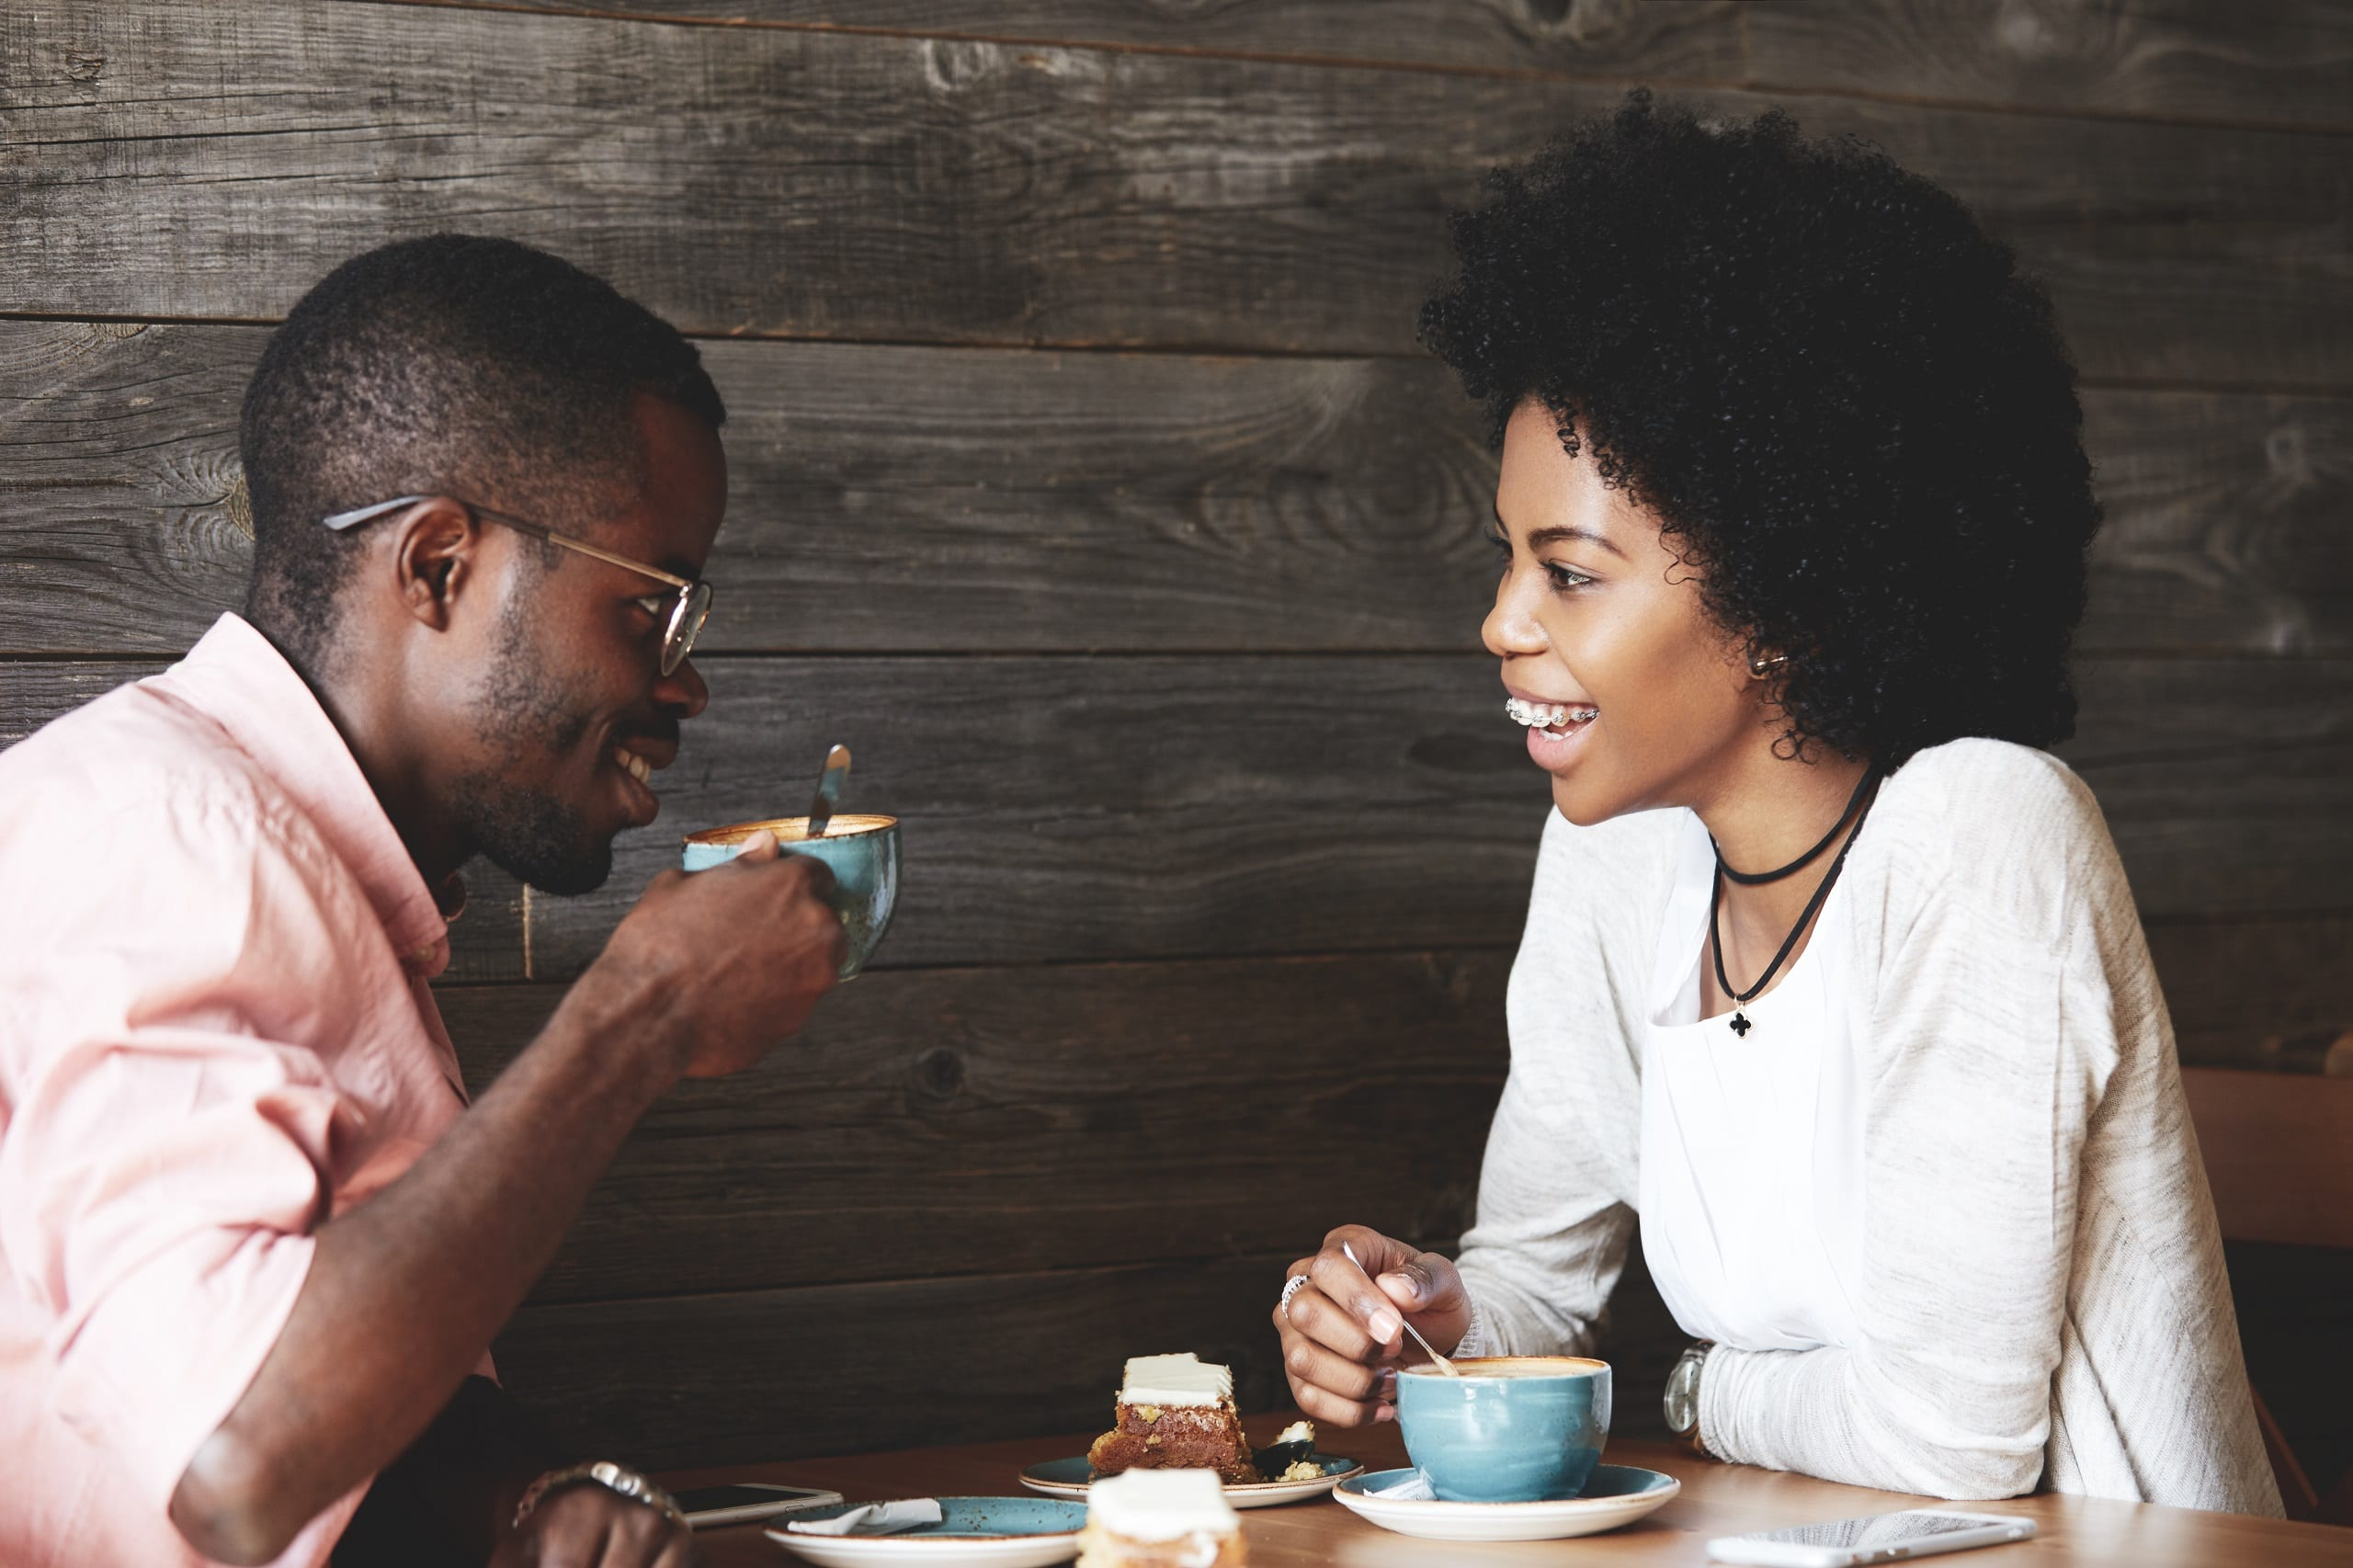 Happy stylish Black friends having coffee together, sitting at a cafe, laughing and having a great time together.